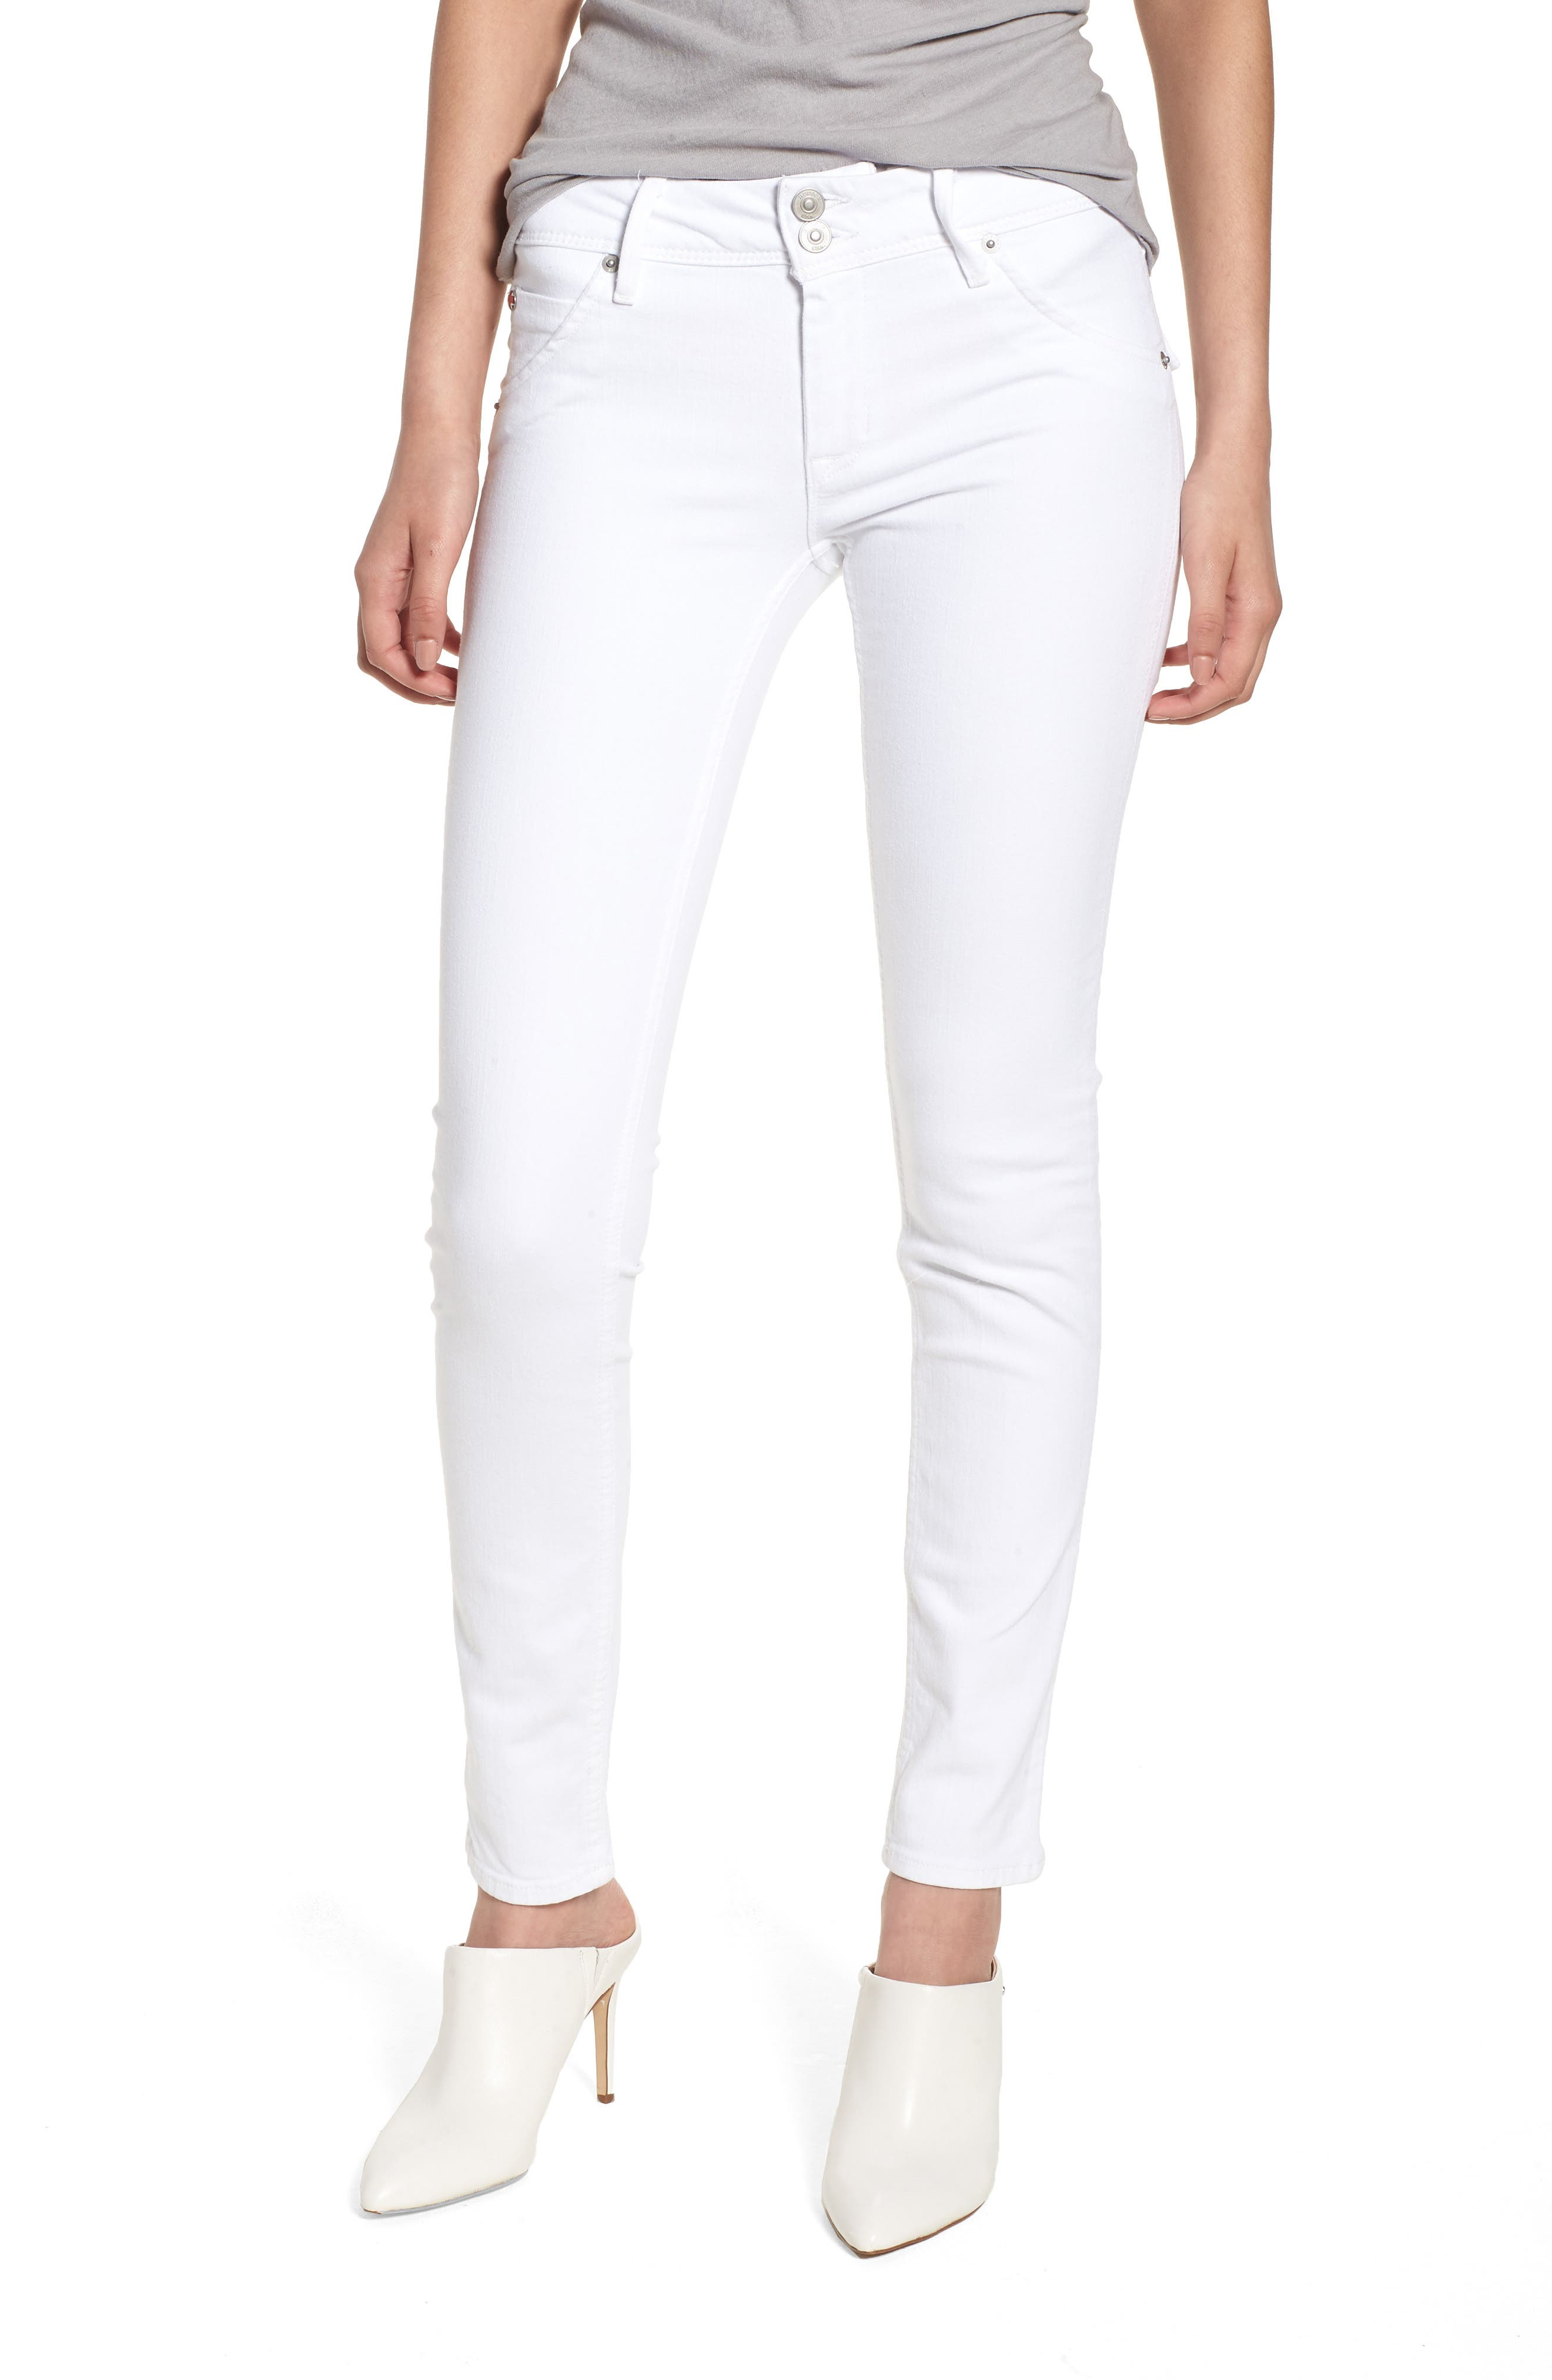 Collin Skinny Jeans,                         Main,                         color, OPTICAL WHITE